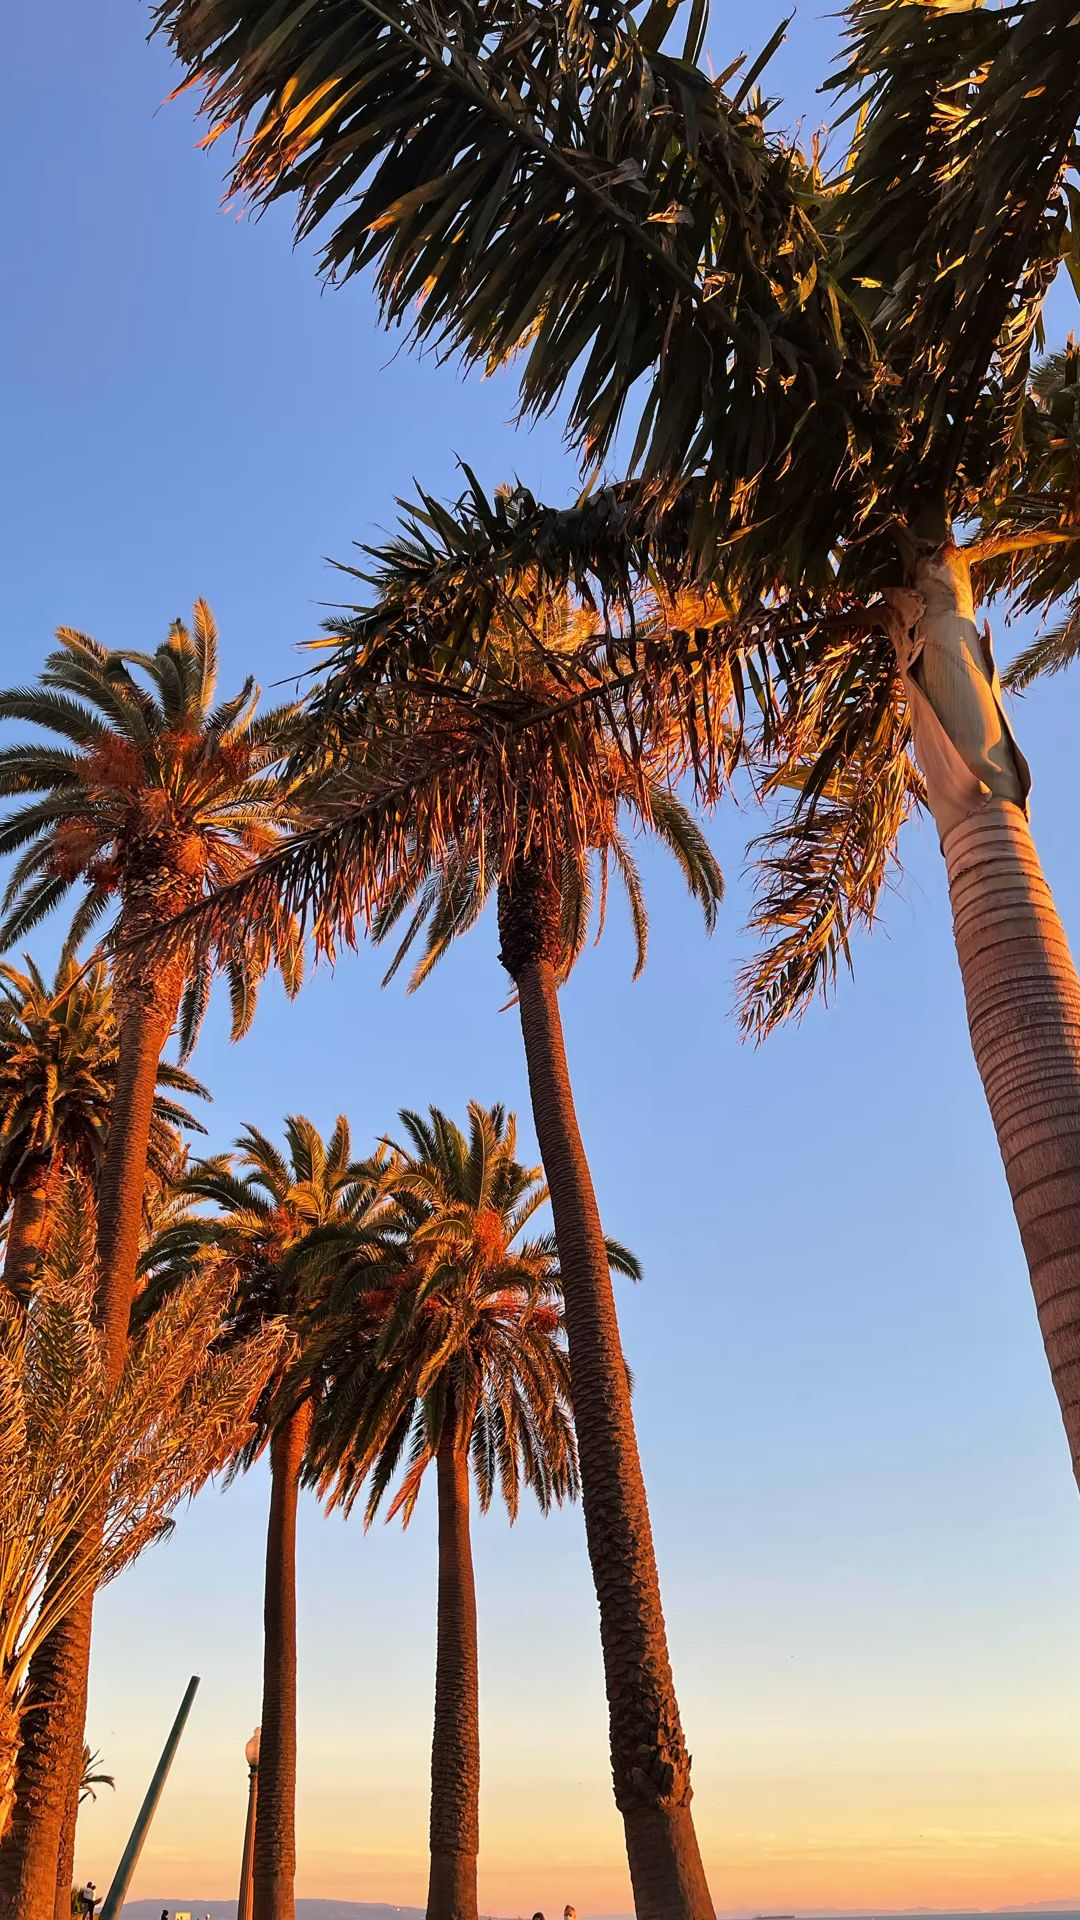 The Best of Los Angeles - Sunsets, Beach, Blue Skies, Palm Trees